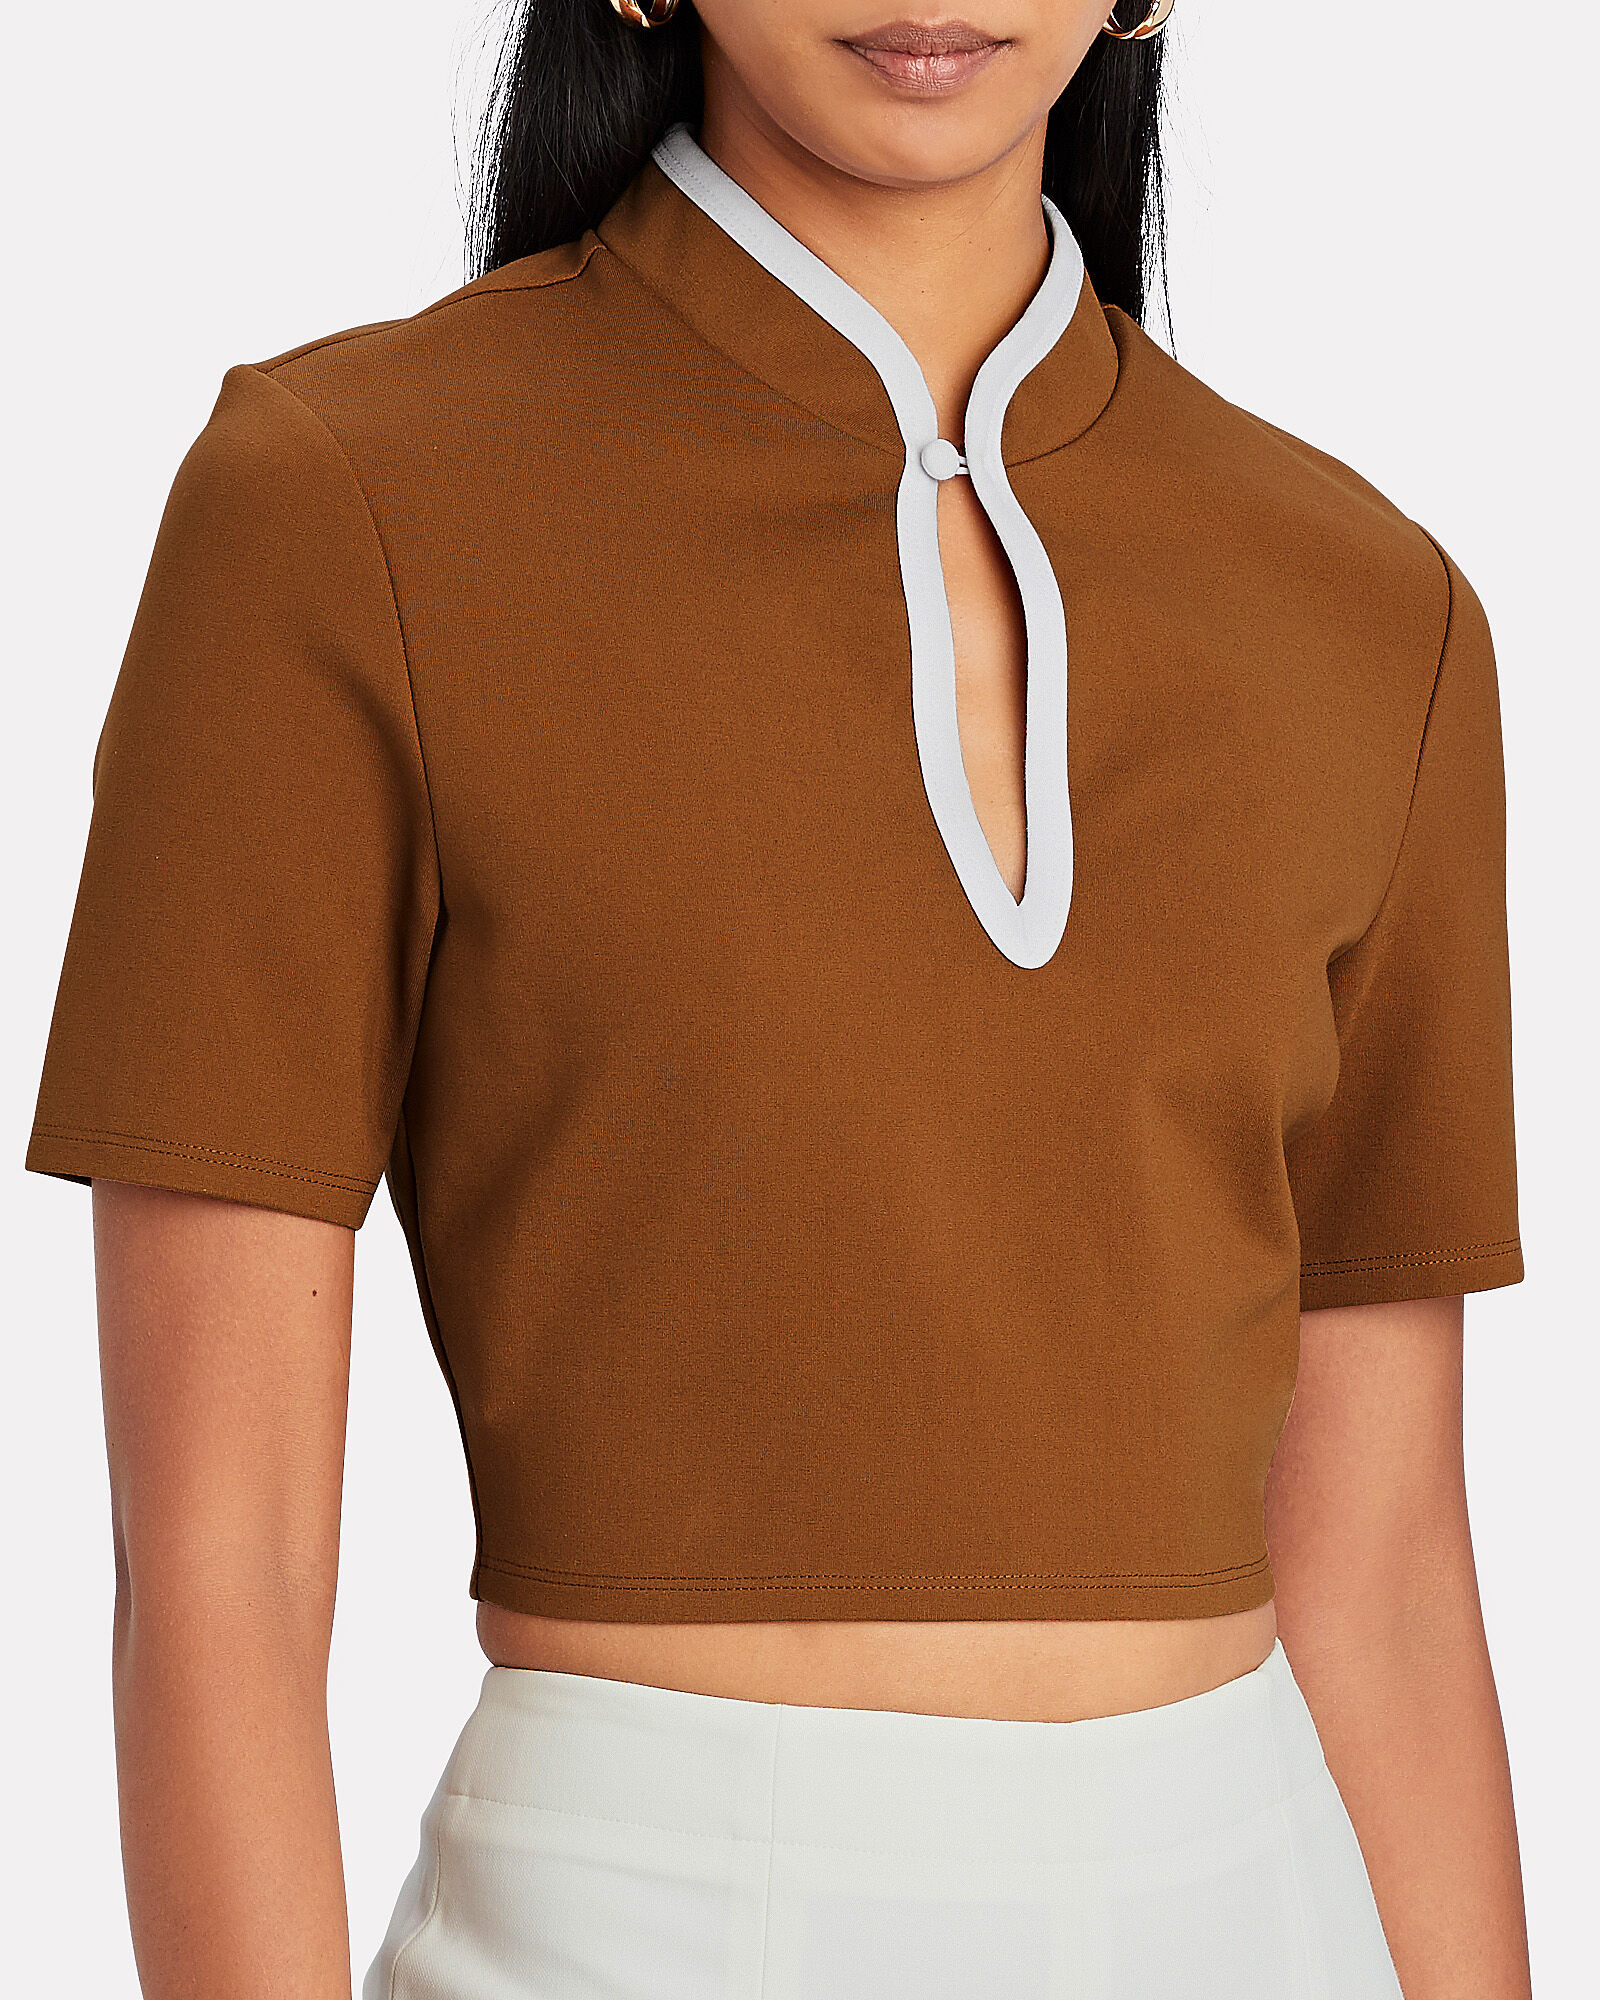 Kiki High Neck Crop Top, BEIGE, hi-res